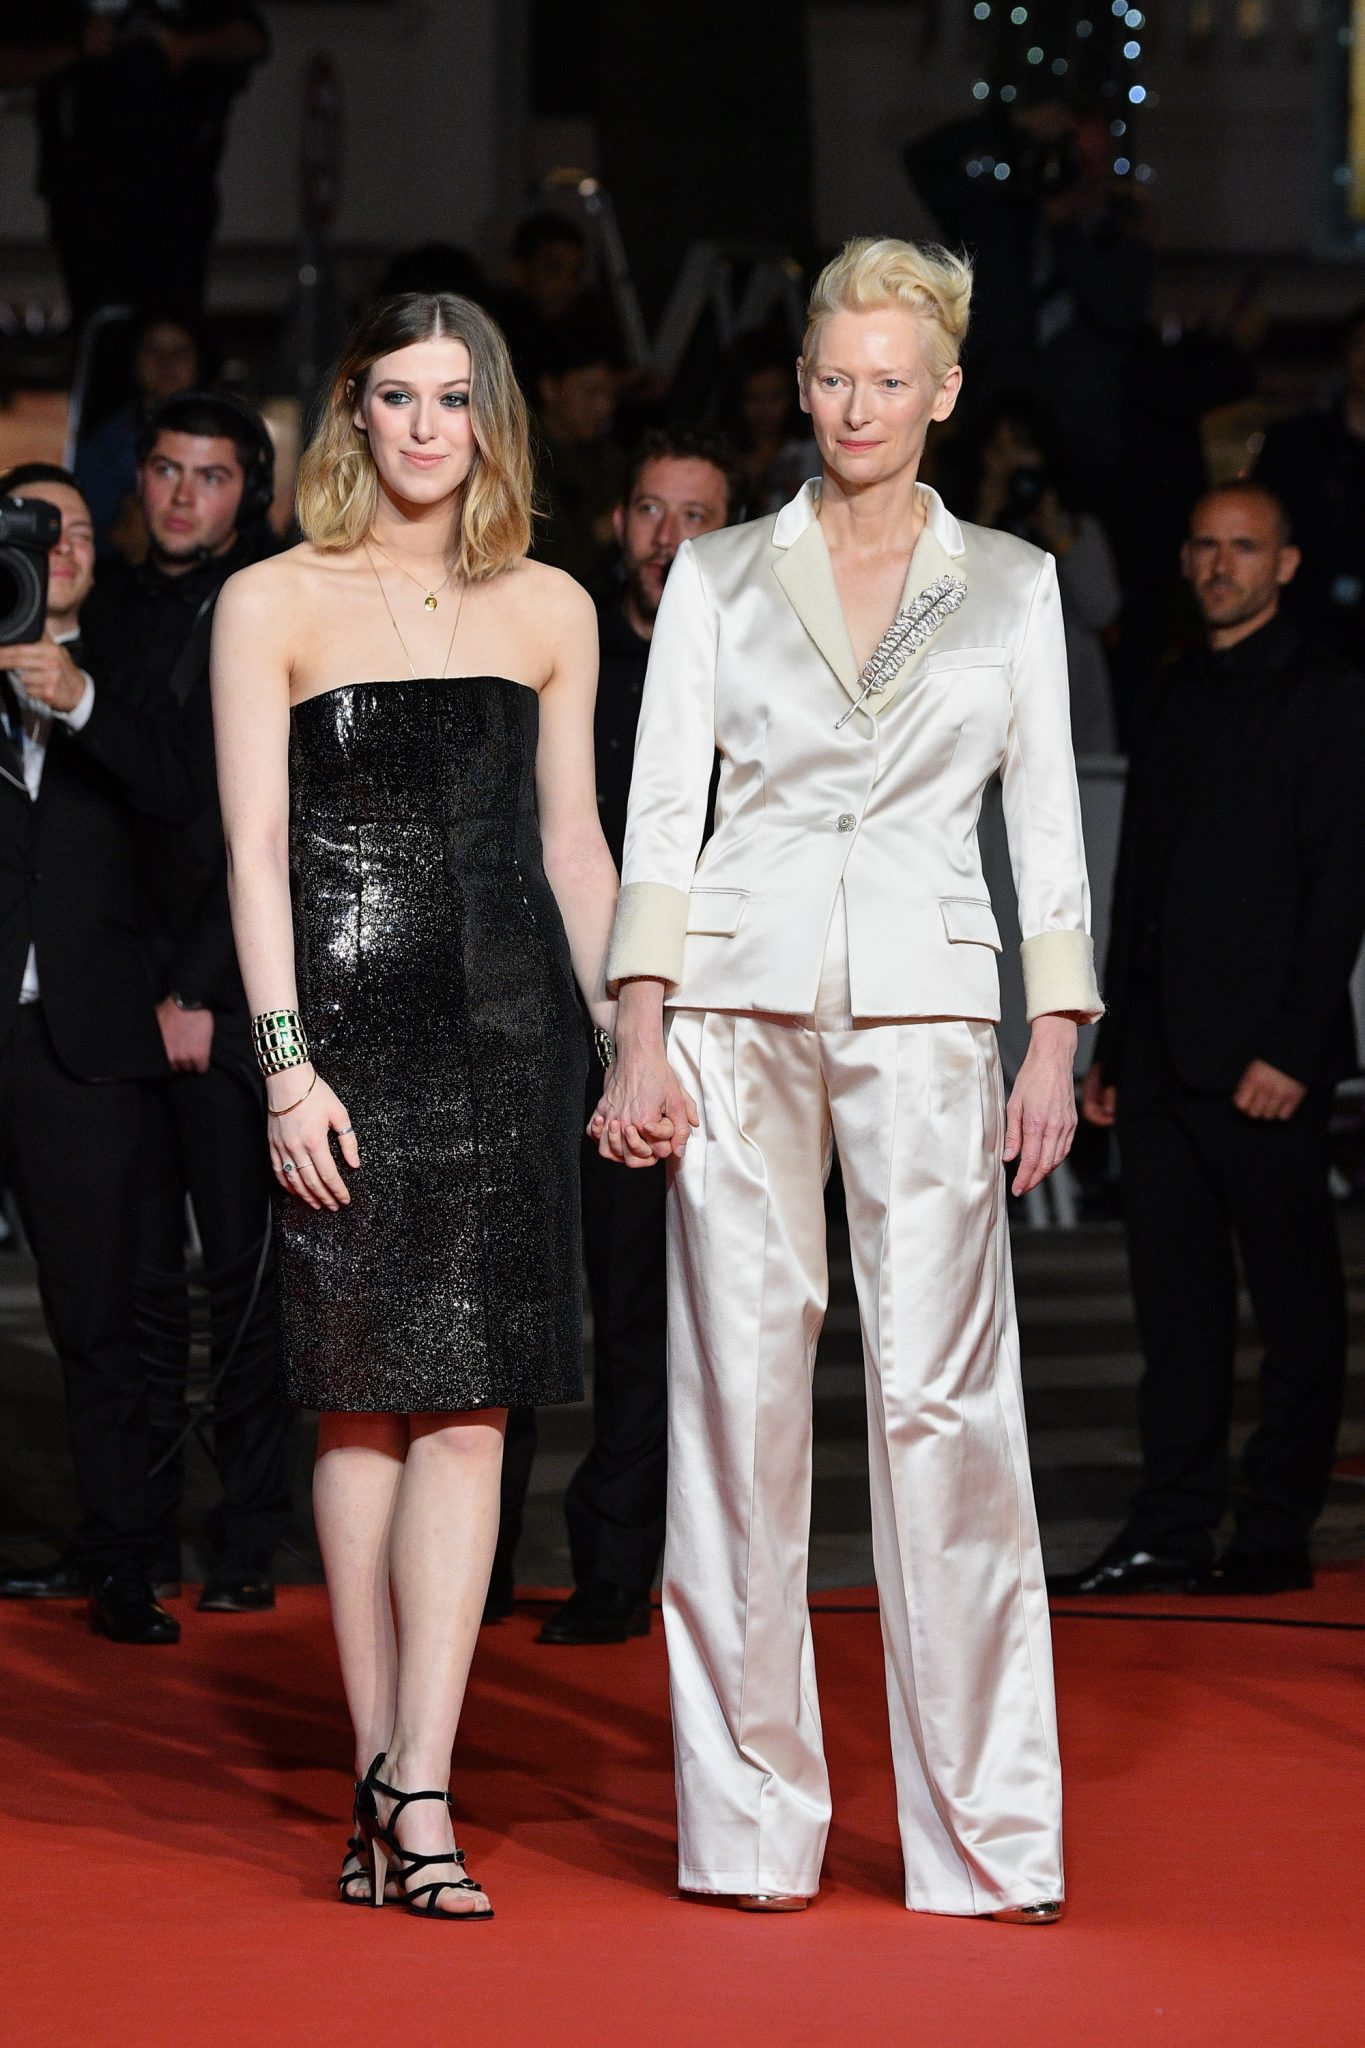 CHANEL Cannes 2019 Honor Swinton Byrne and Tilda Swinton Esprit de Gabrielle espritdegabrielle.com